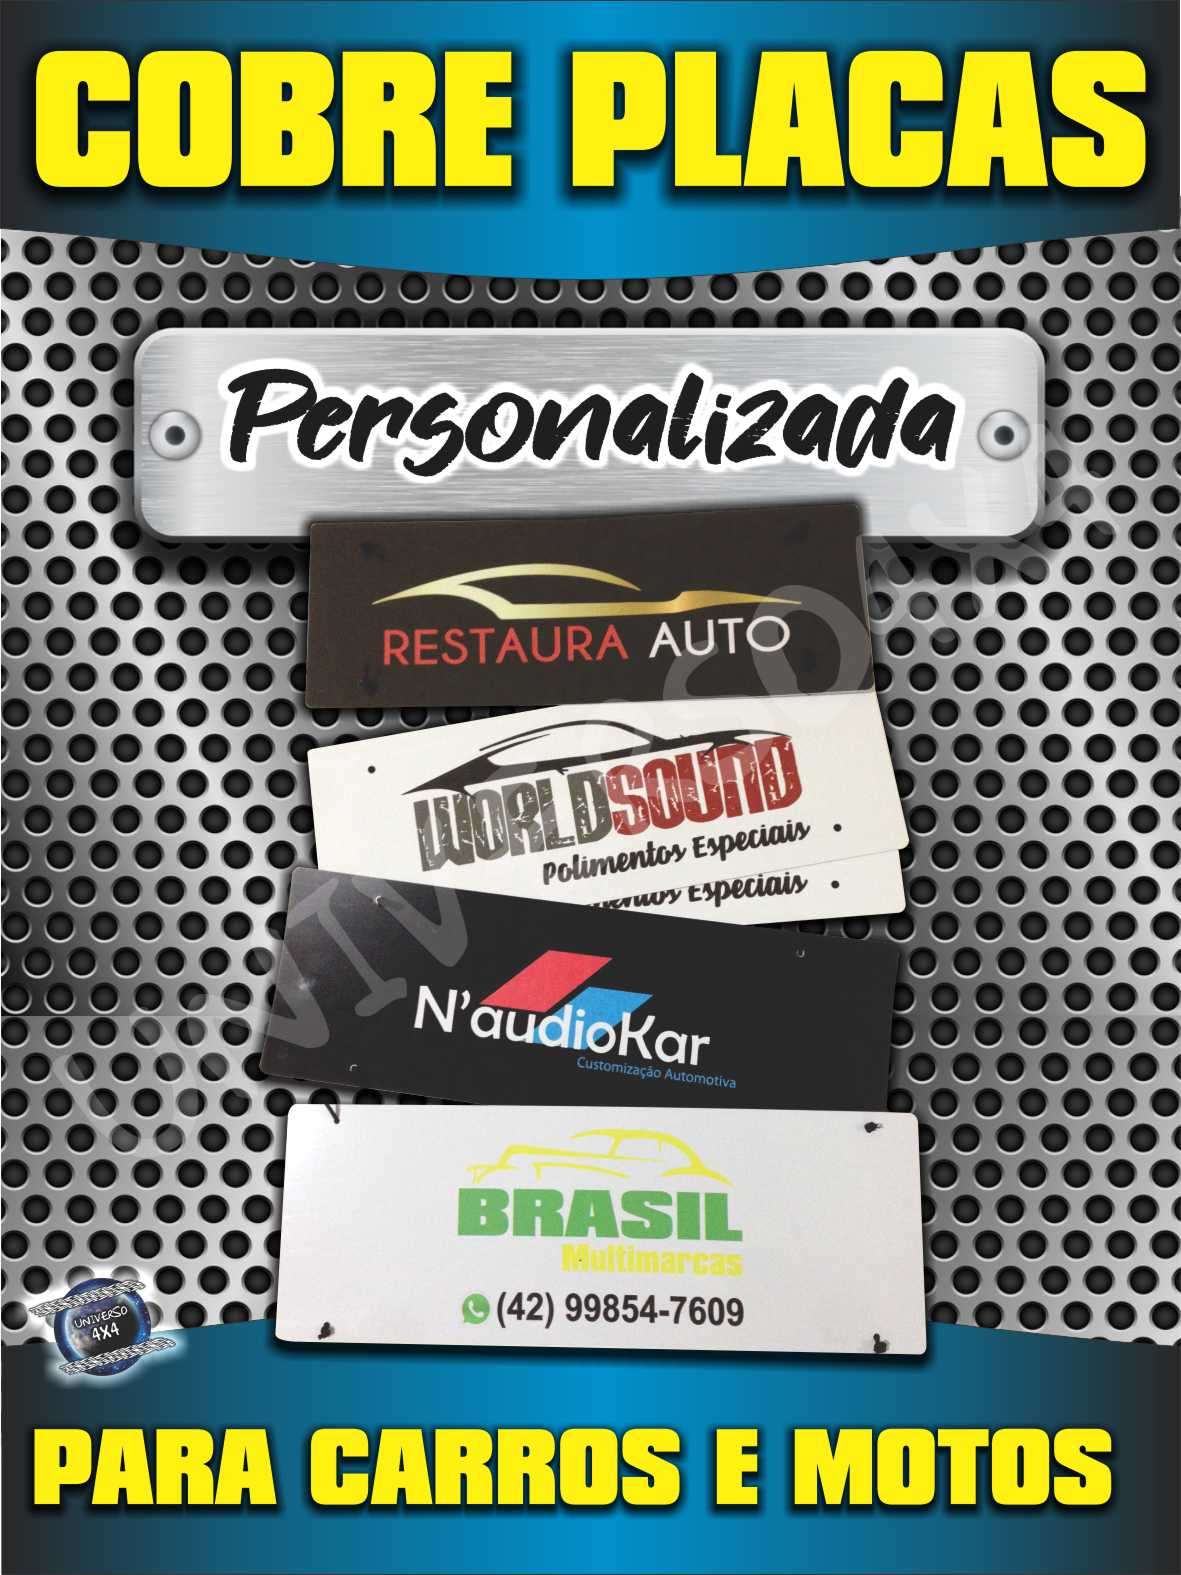 KIT 04 PLACAS COBRE TAMPA PLACA AUTOMOTIVA M-230419